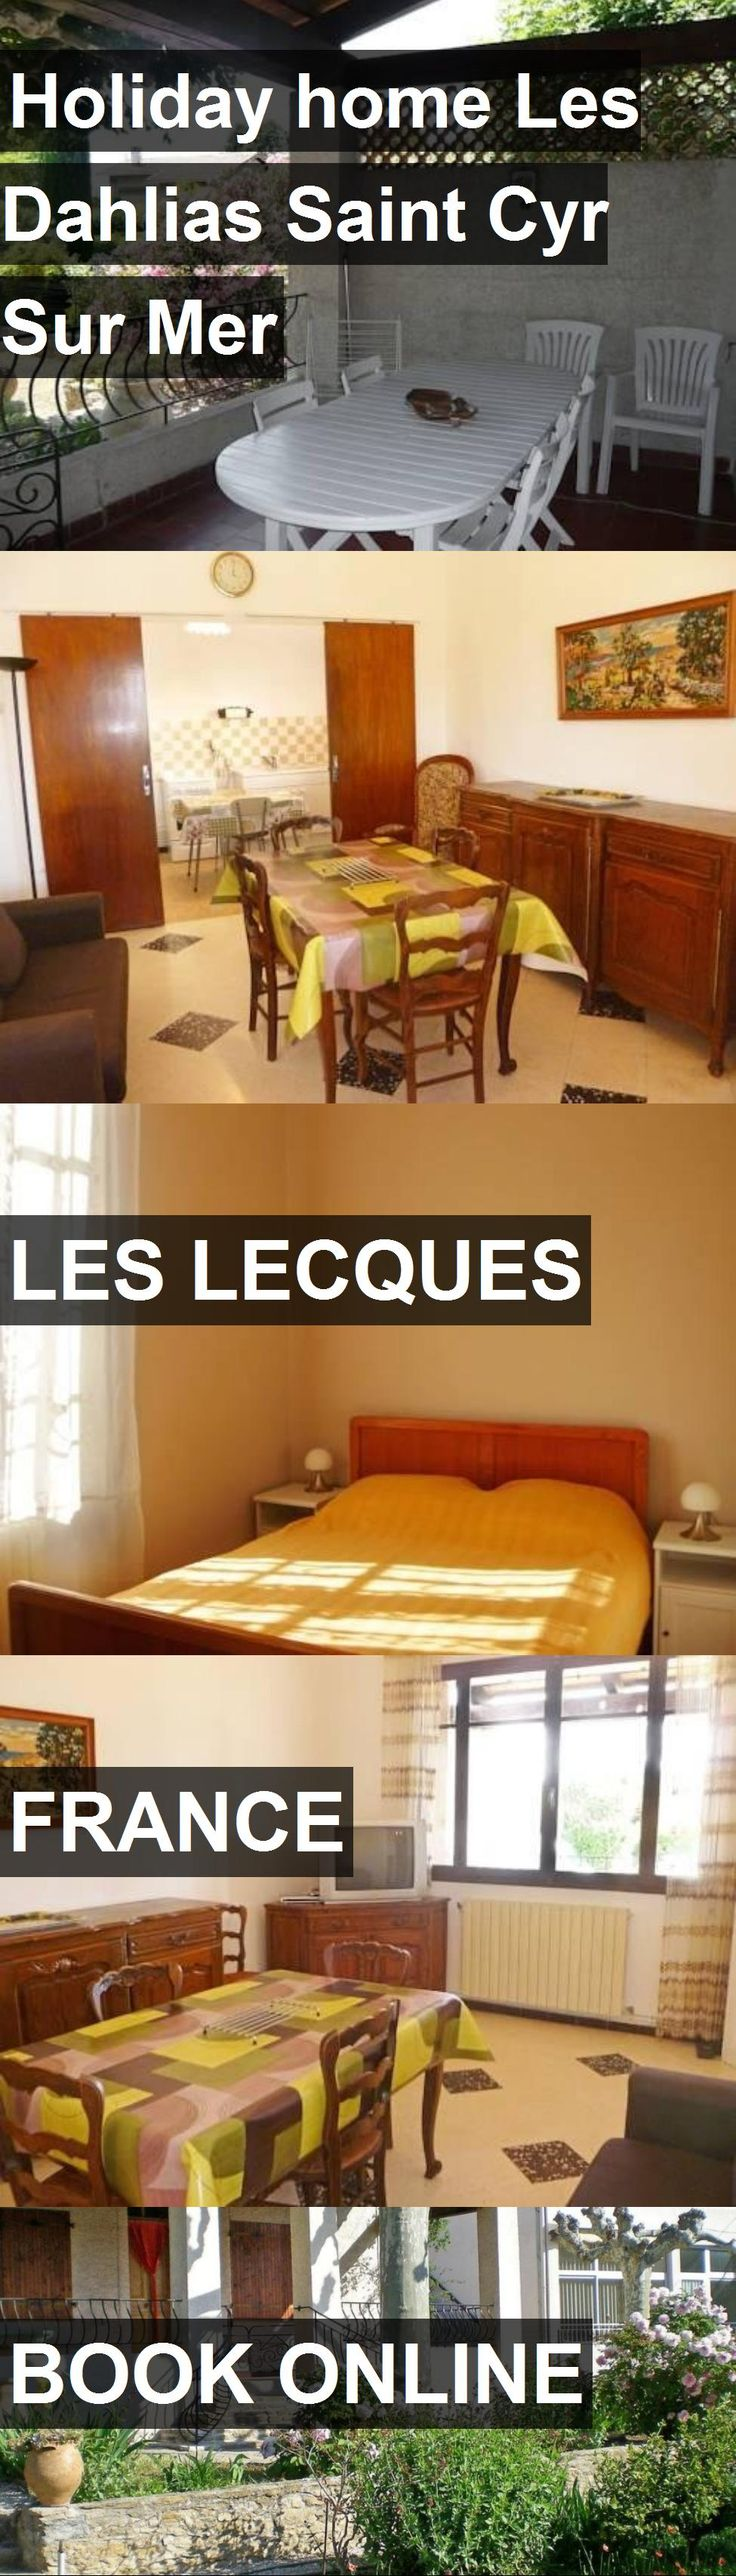 Hotel Holiday home Les Dahlias Saint Cyr Sur Mer in Les Lecques, France. For more information, photos, reviews and best prices please follow the link. #France #LesLecques #travel #vacation #hotel